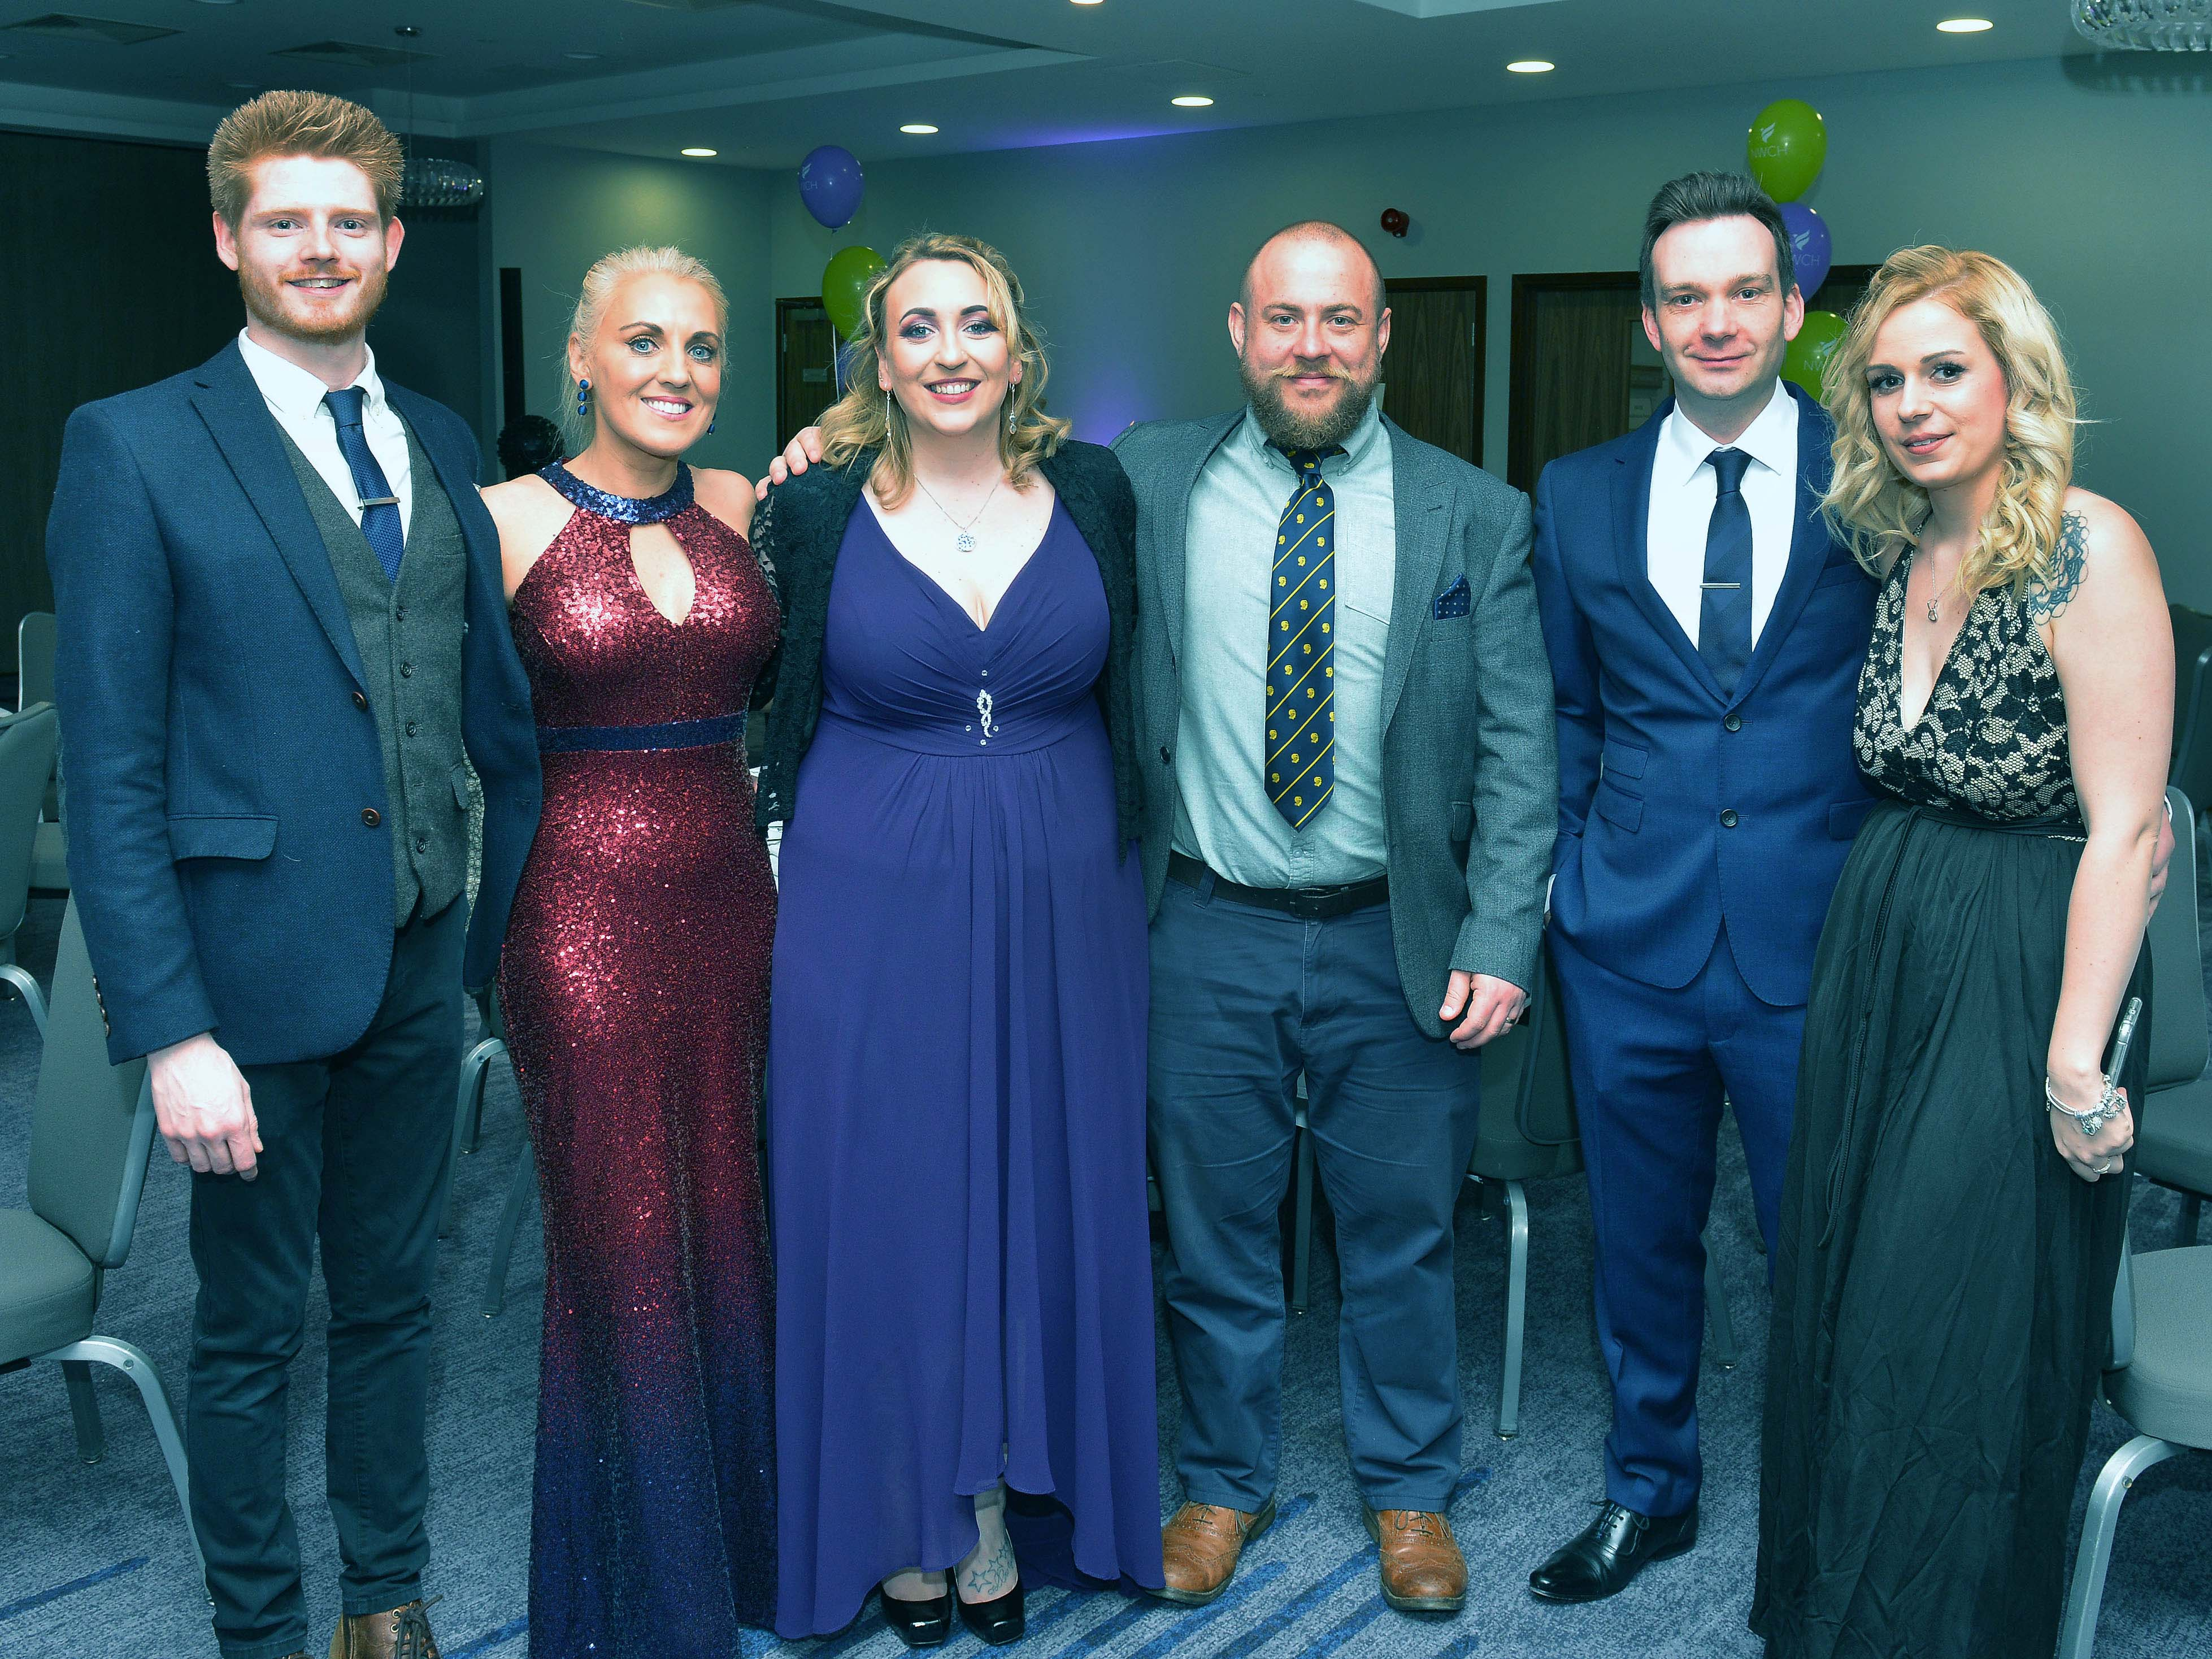 Councellors applauded for turning lives around